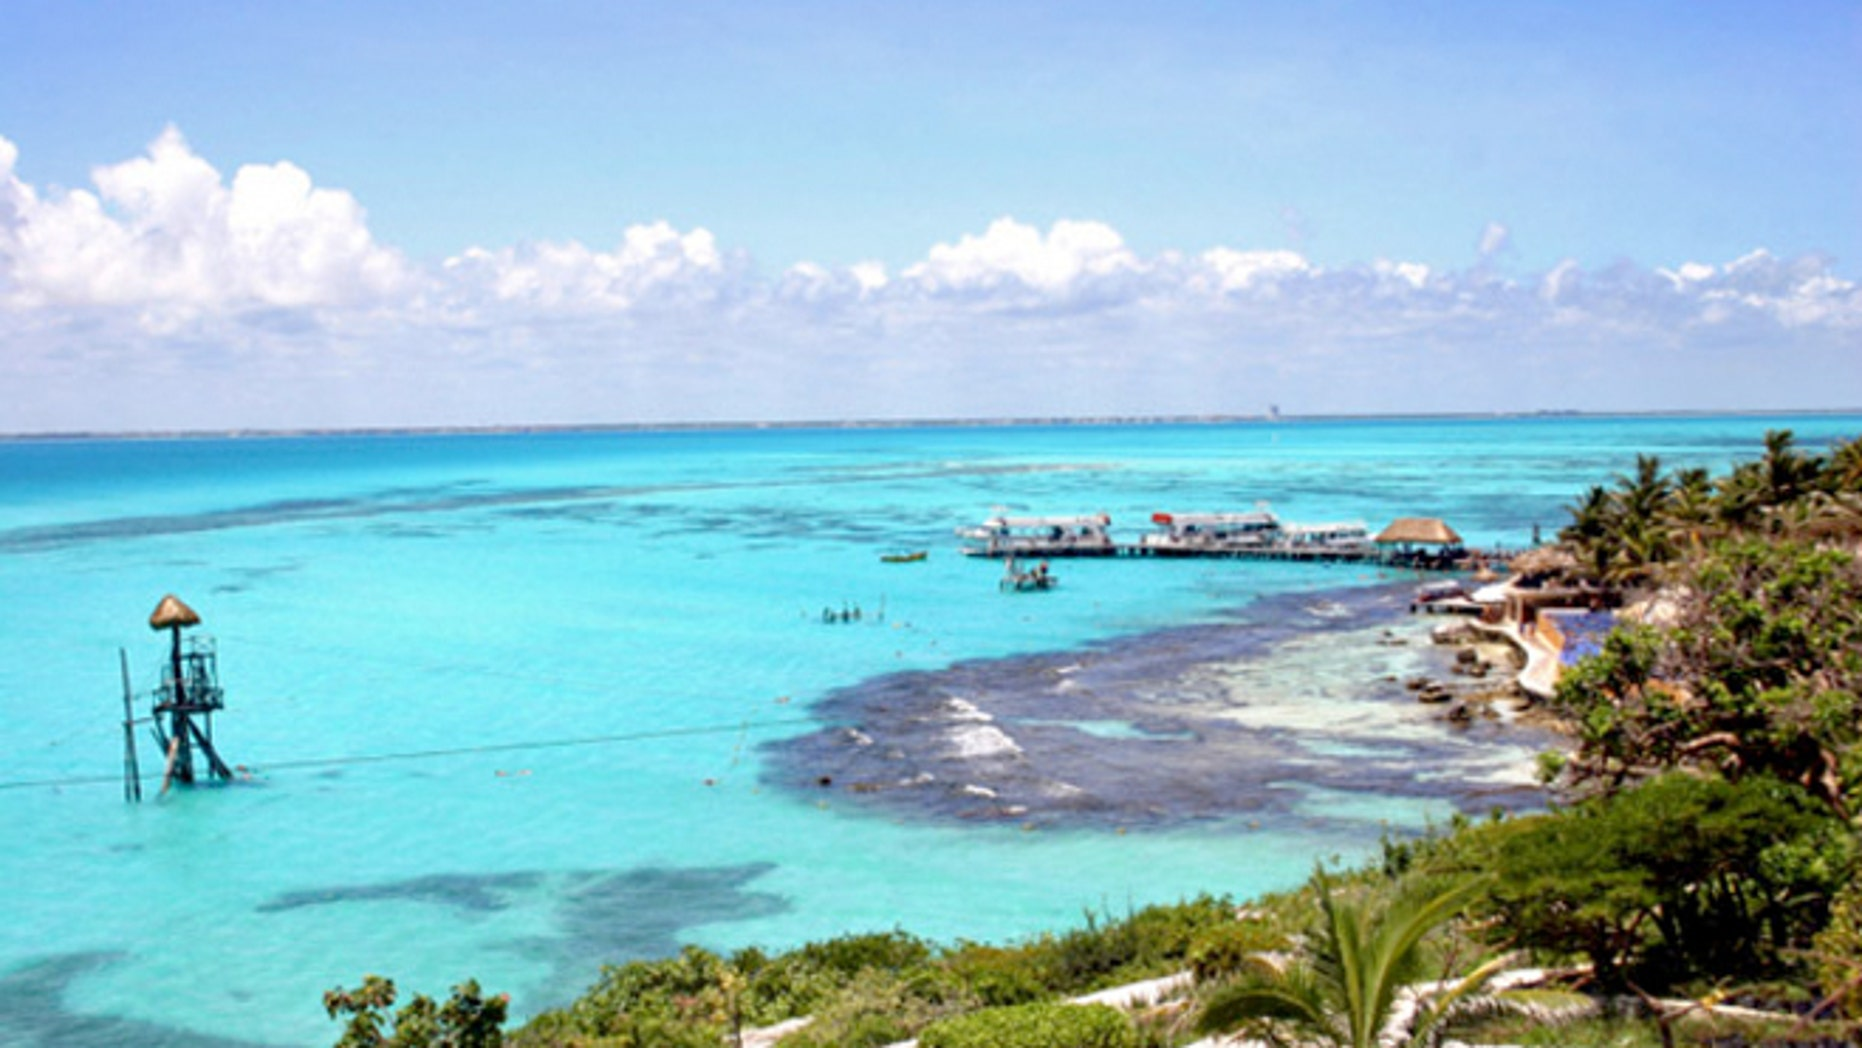 """Isla Mujeres, which means """"Island of the Women,"""" is less than a 30-minute boat ride away from Spring Break oasis Cancun, but feels a world away."""